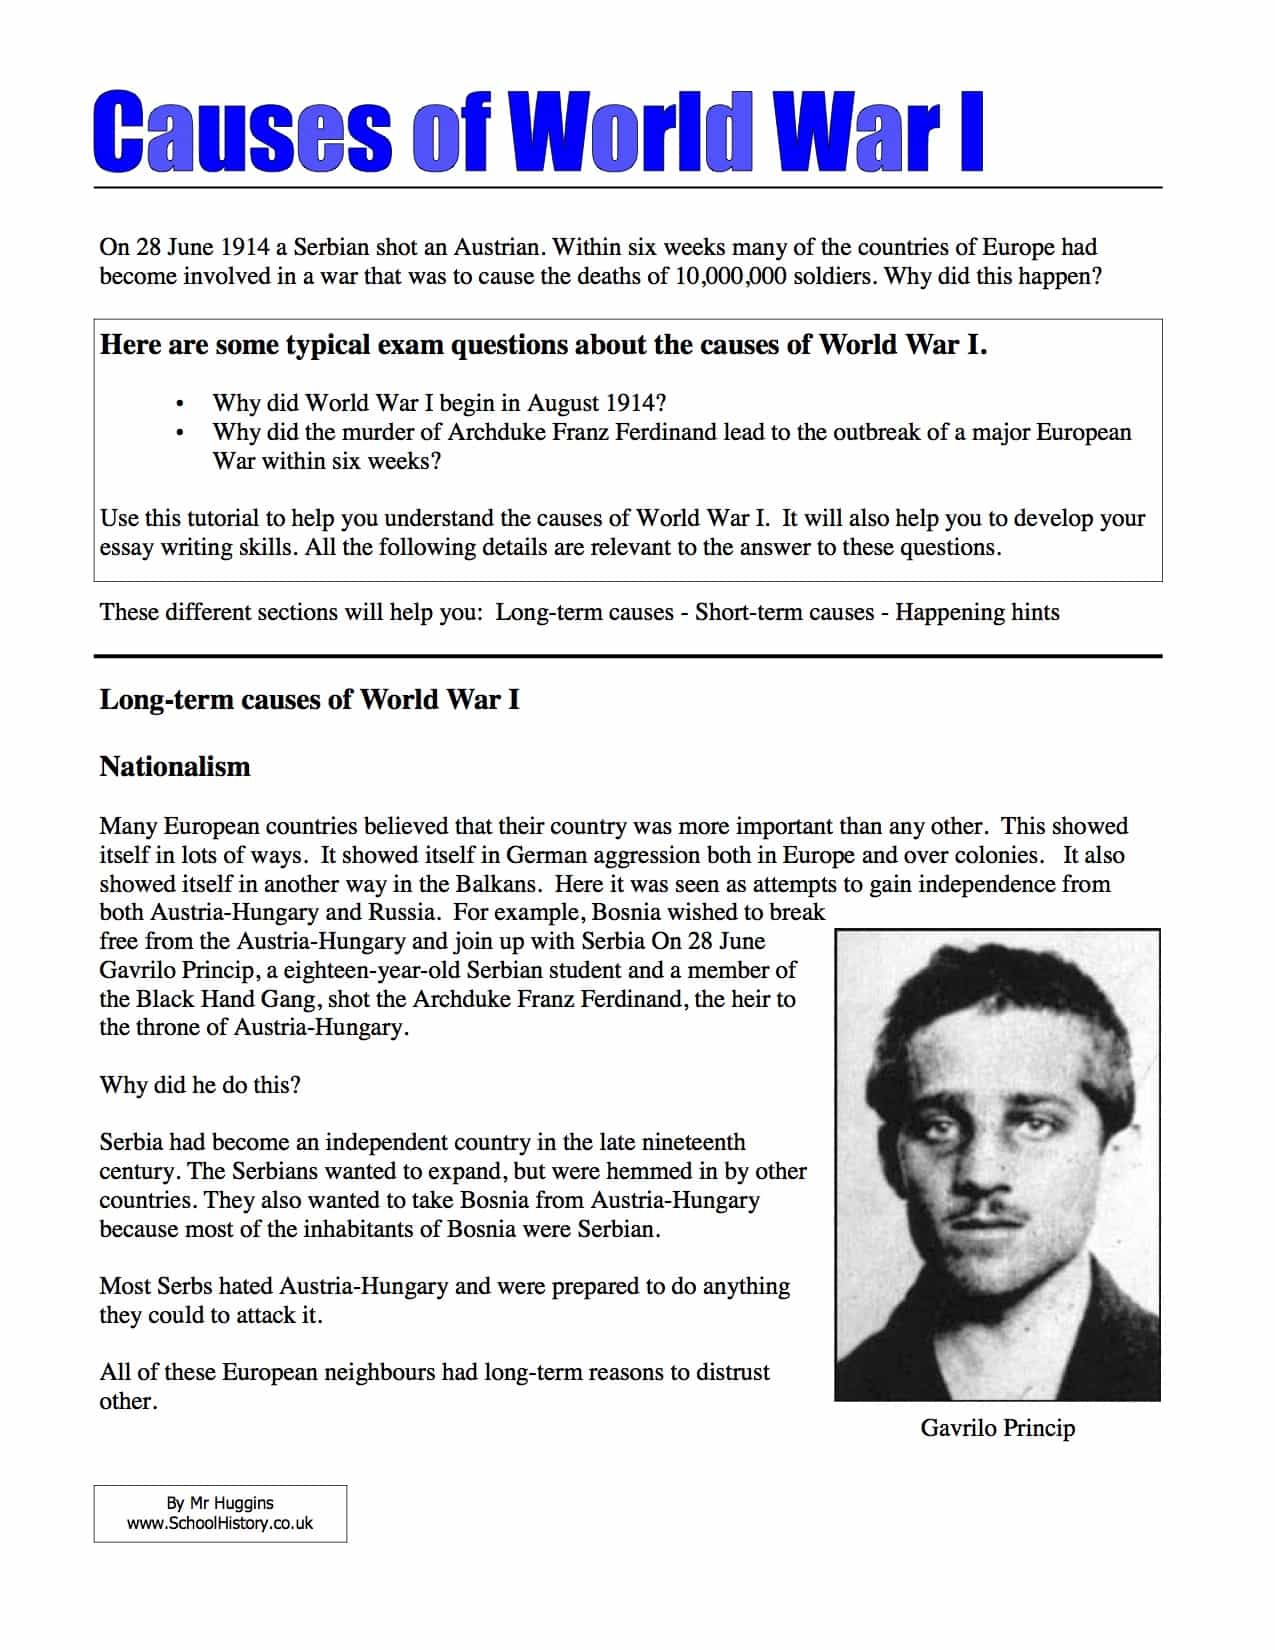 33 Causes Of World War 1 Worksheet Answers